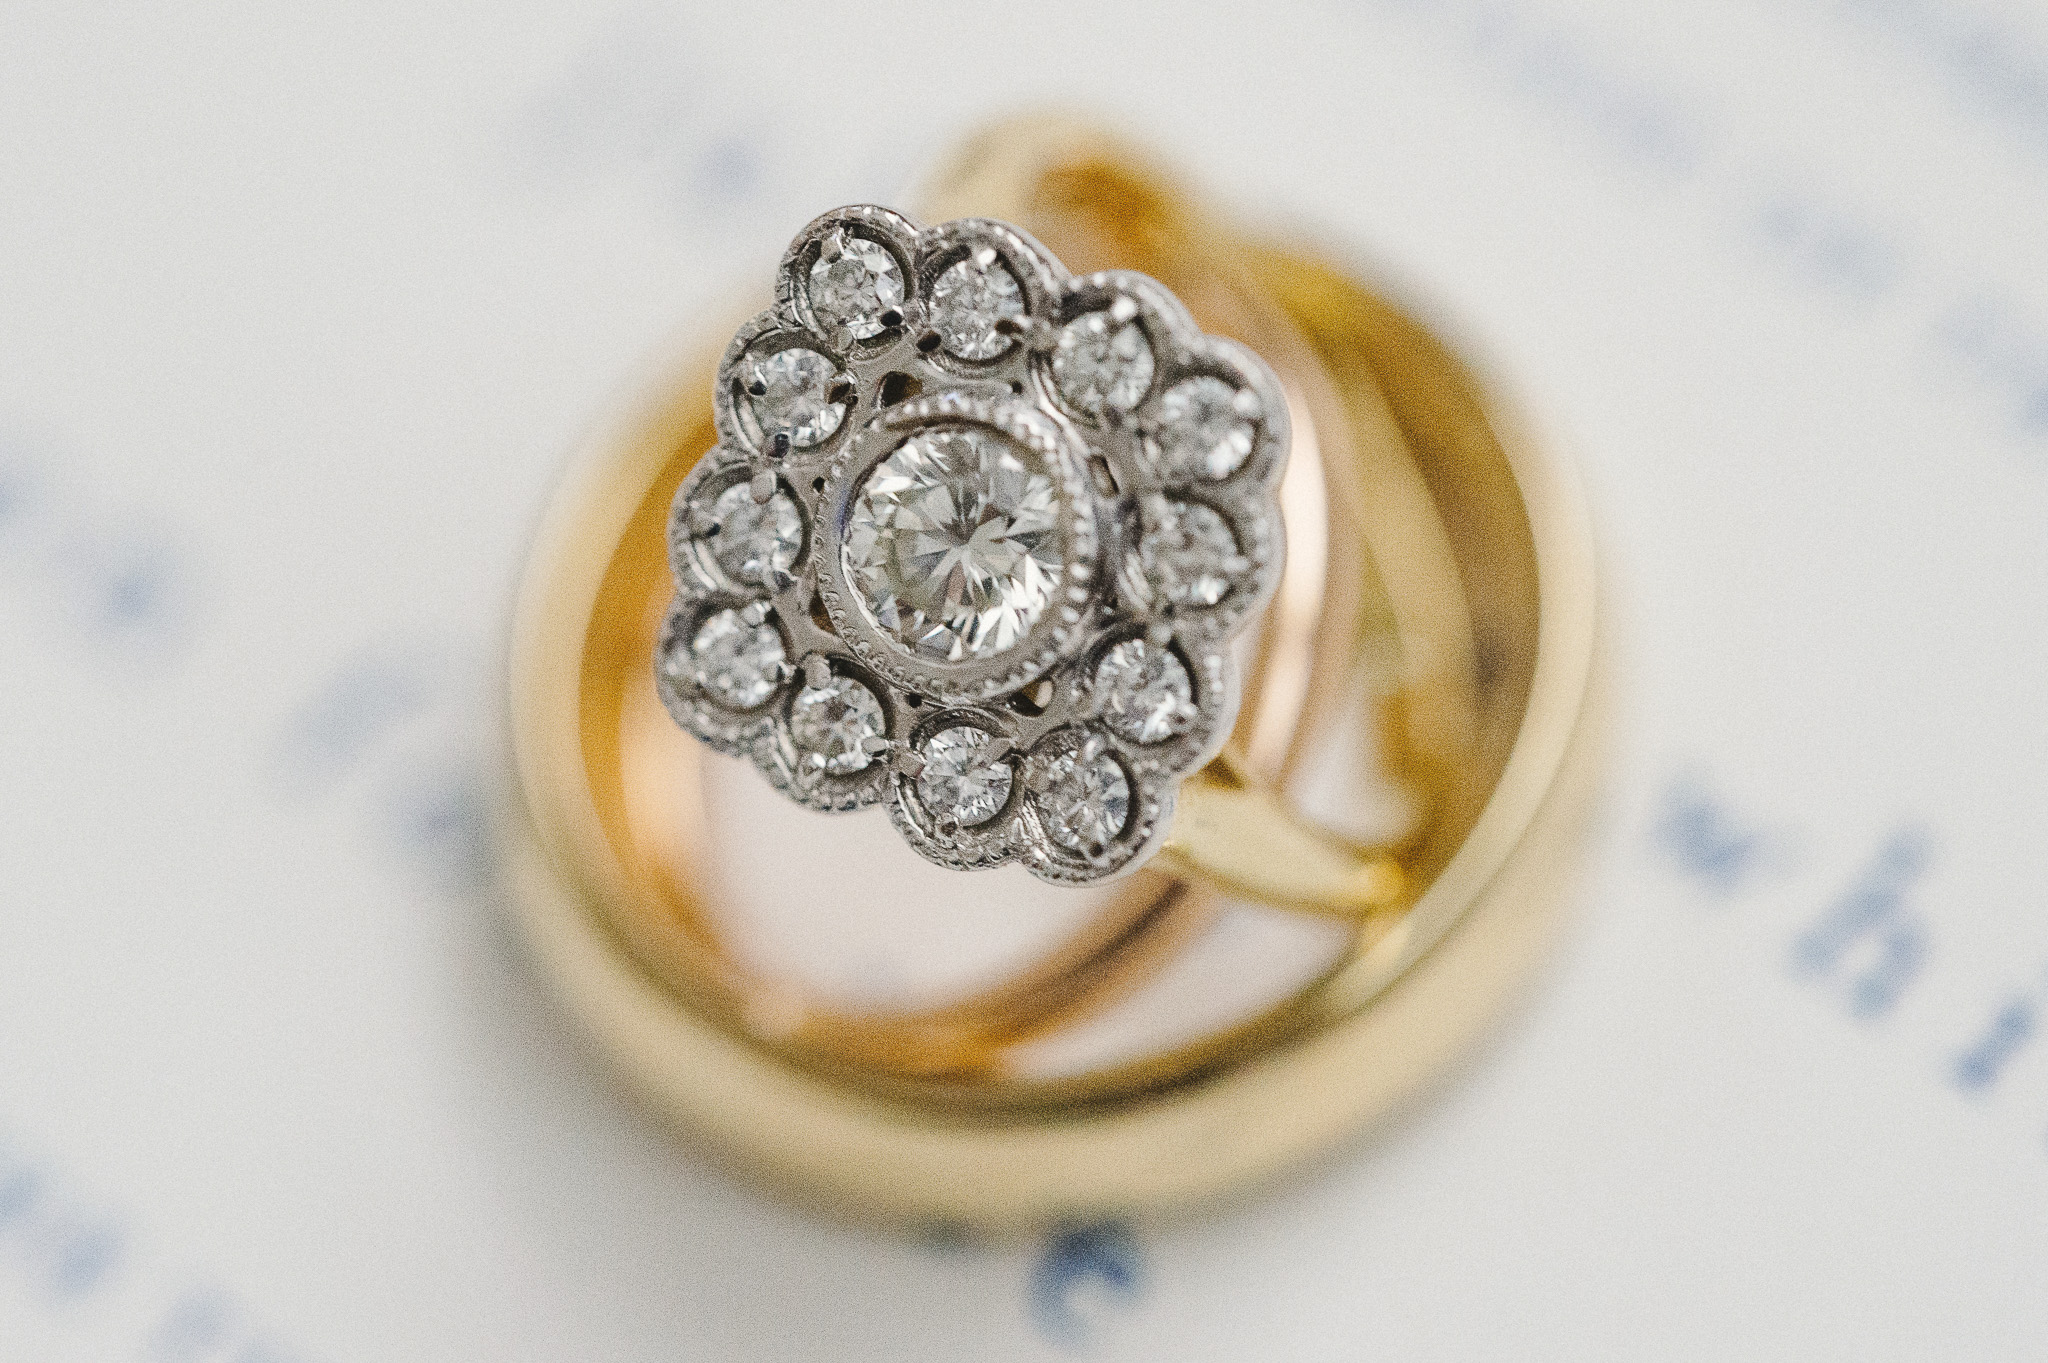 Vintage Inspired Wedding Ring